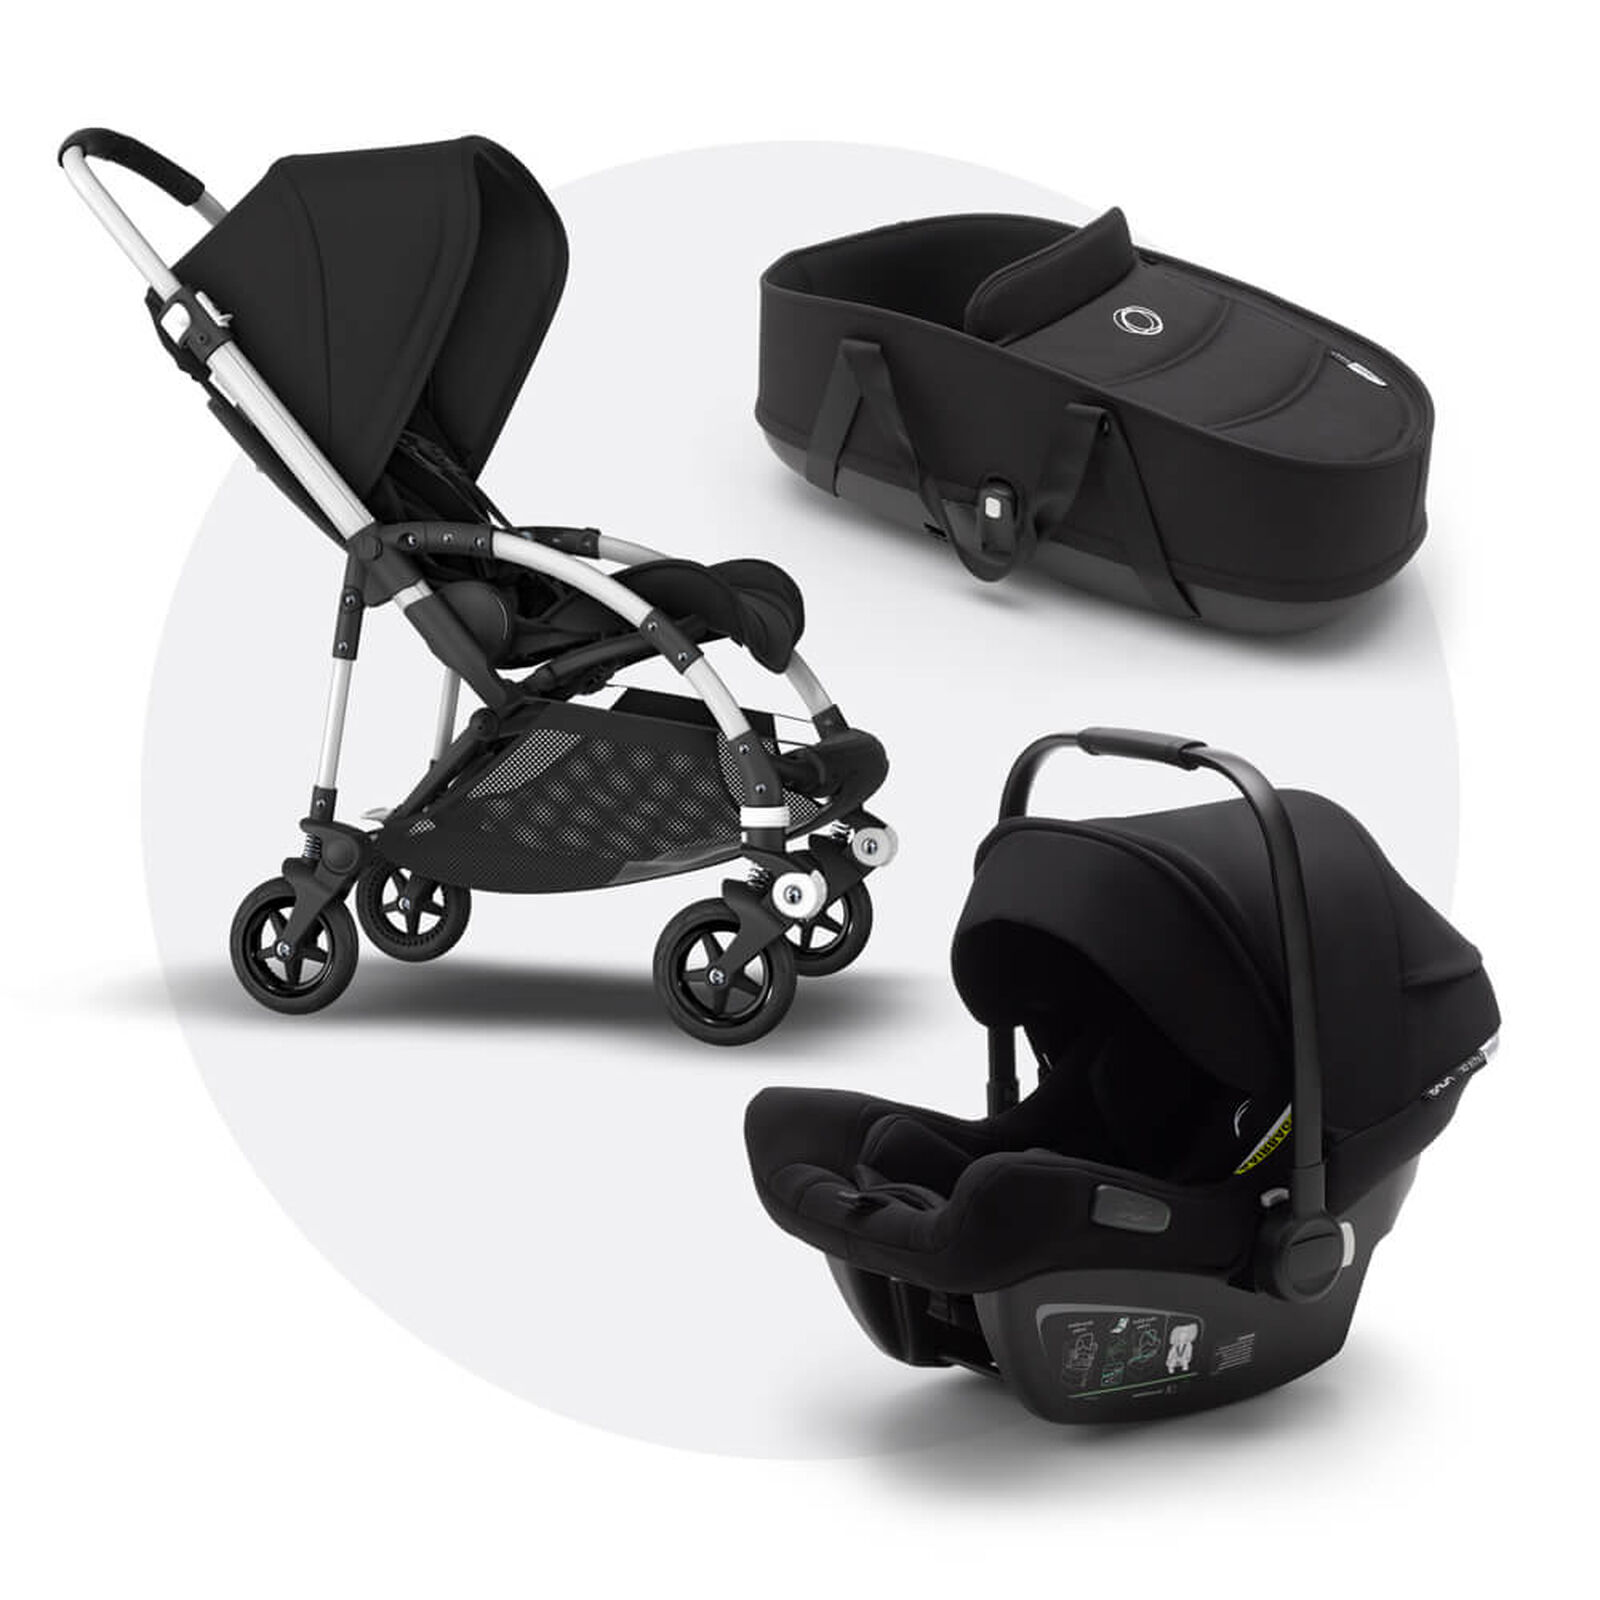 Bugaboo Bee 5 travel system